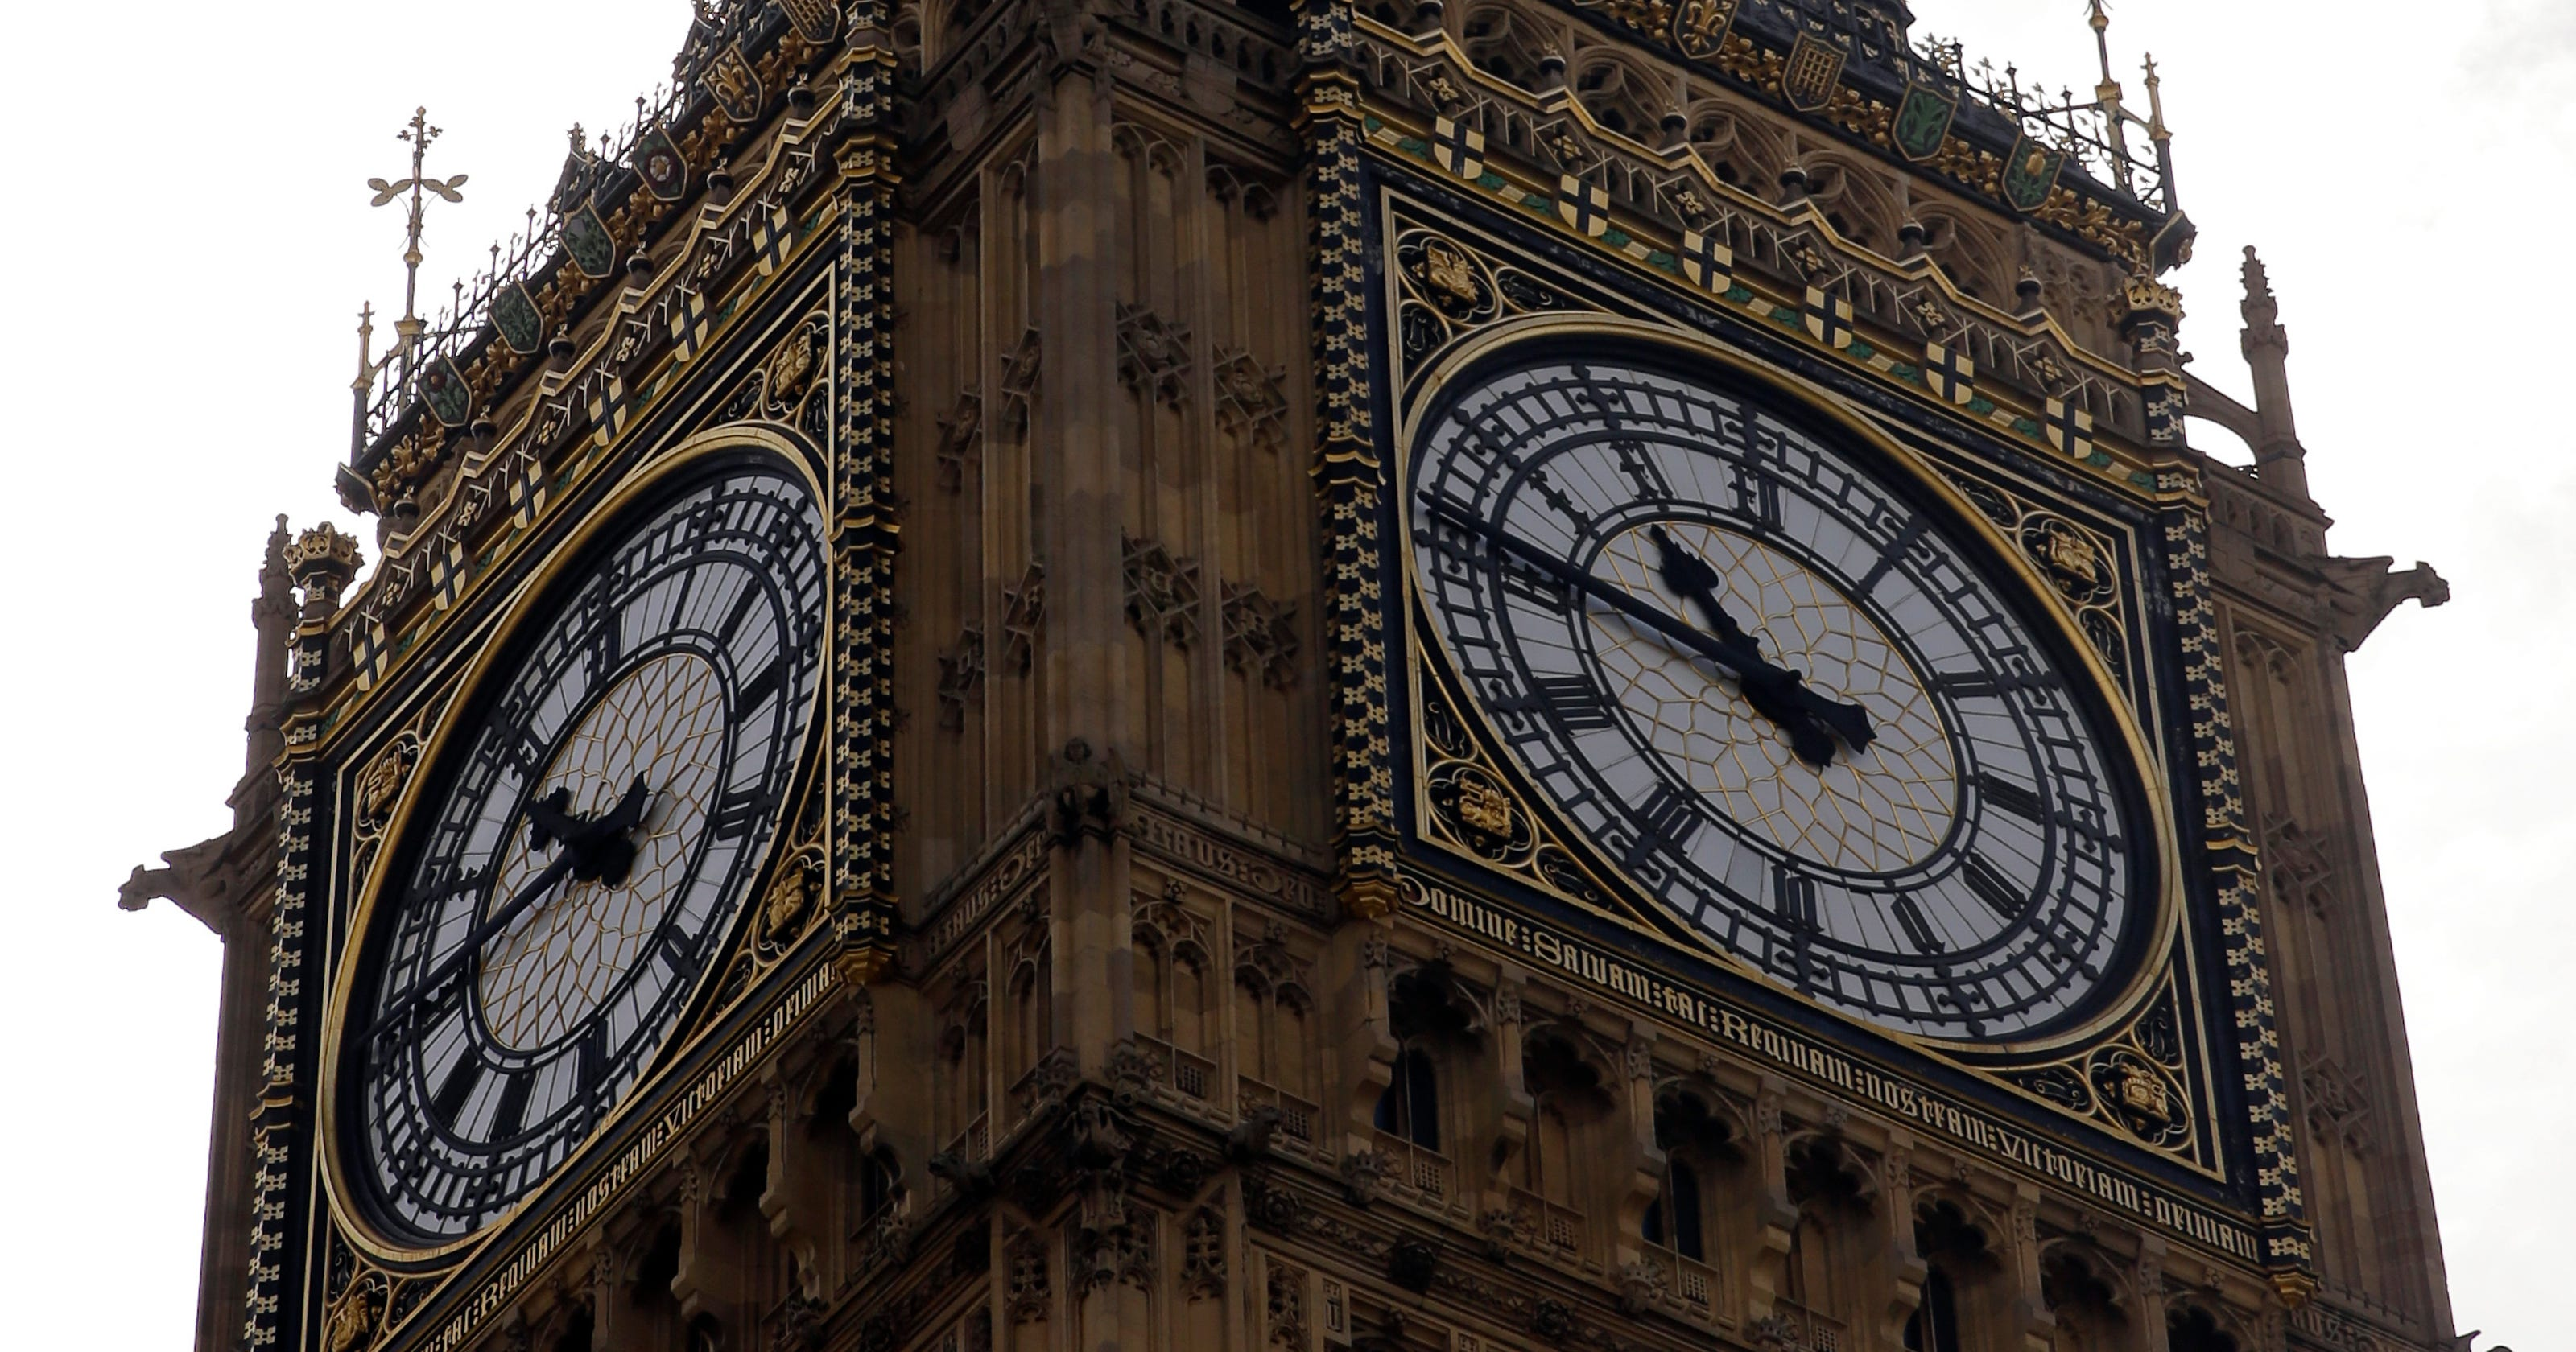 Big Ben In London Is Going Silent For 4 Years Of Repairs So No